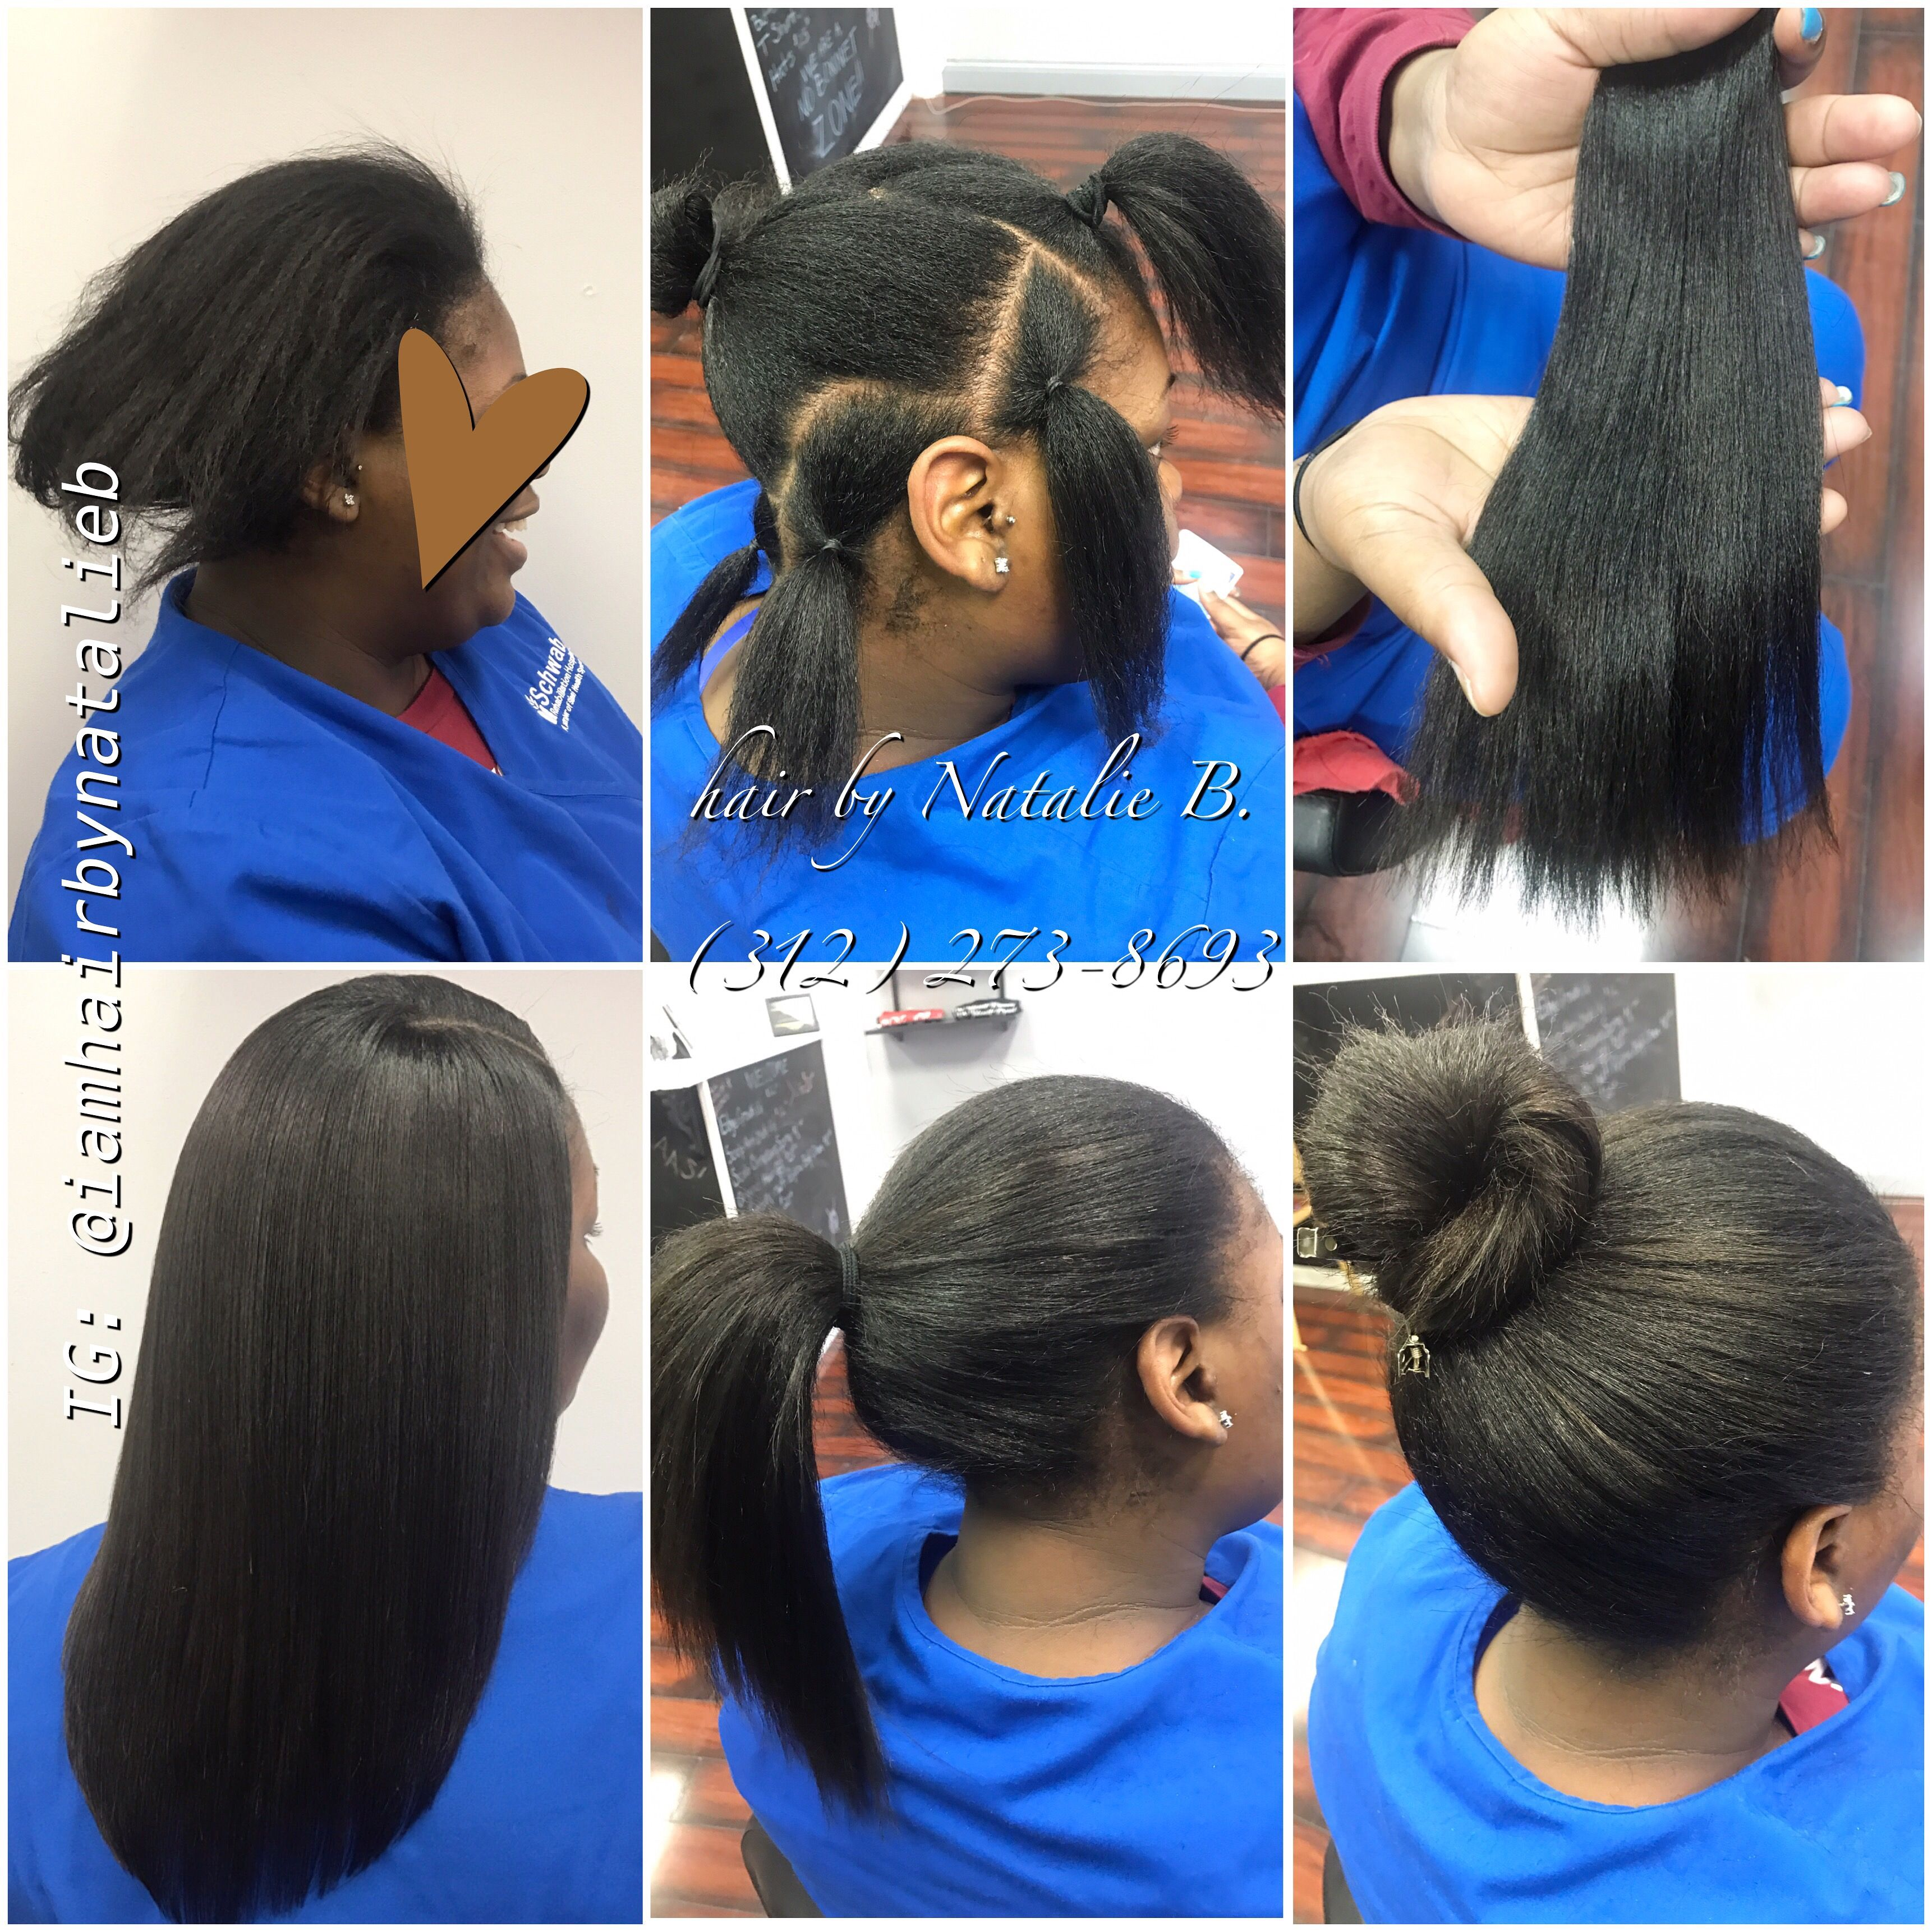 Now this is a natural looking versatile sew inrfect pony flawless versatile sew in hair weave by natalie b using malaysian relaxed natural hair extensions from natural girl hair imports pmusecretfo Image collections